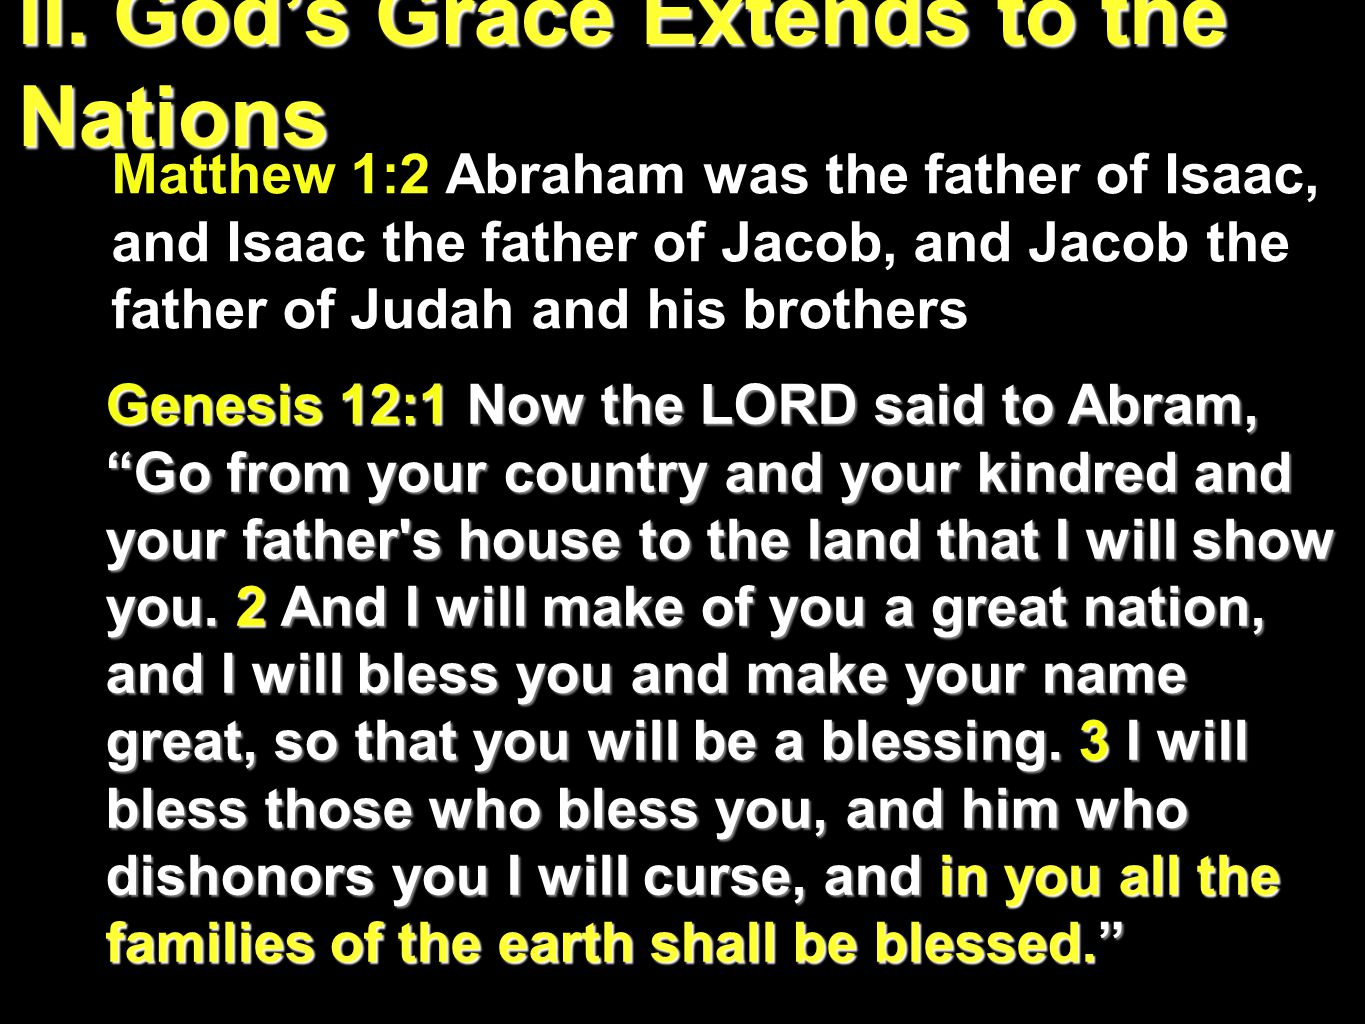 II. God's Grace Extends to the Nations Matthew 1:2 Abraham was the father of Isaac, and Isaac the father of Jacob, and Jacob the father of Judah and h